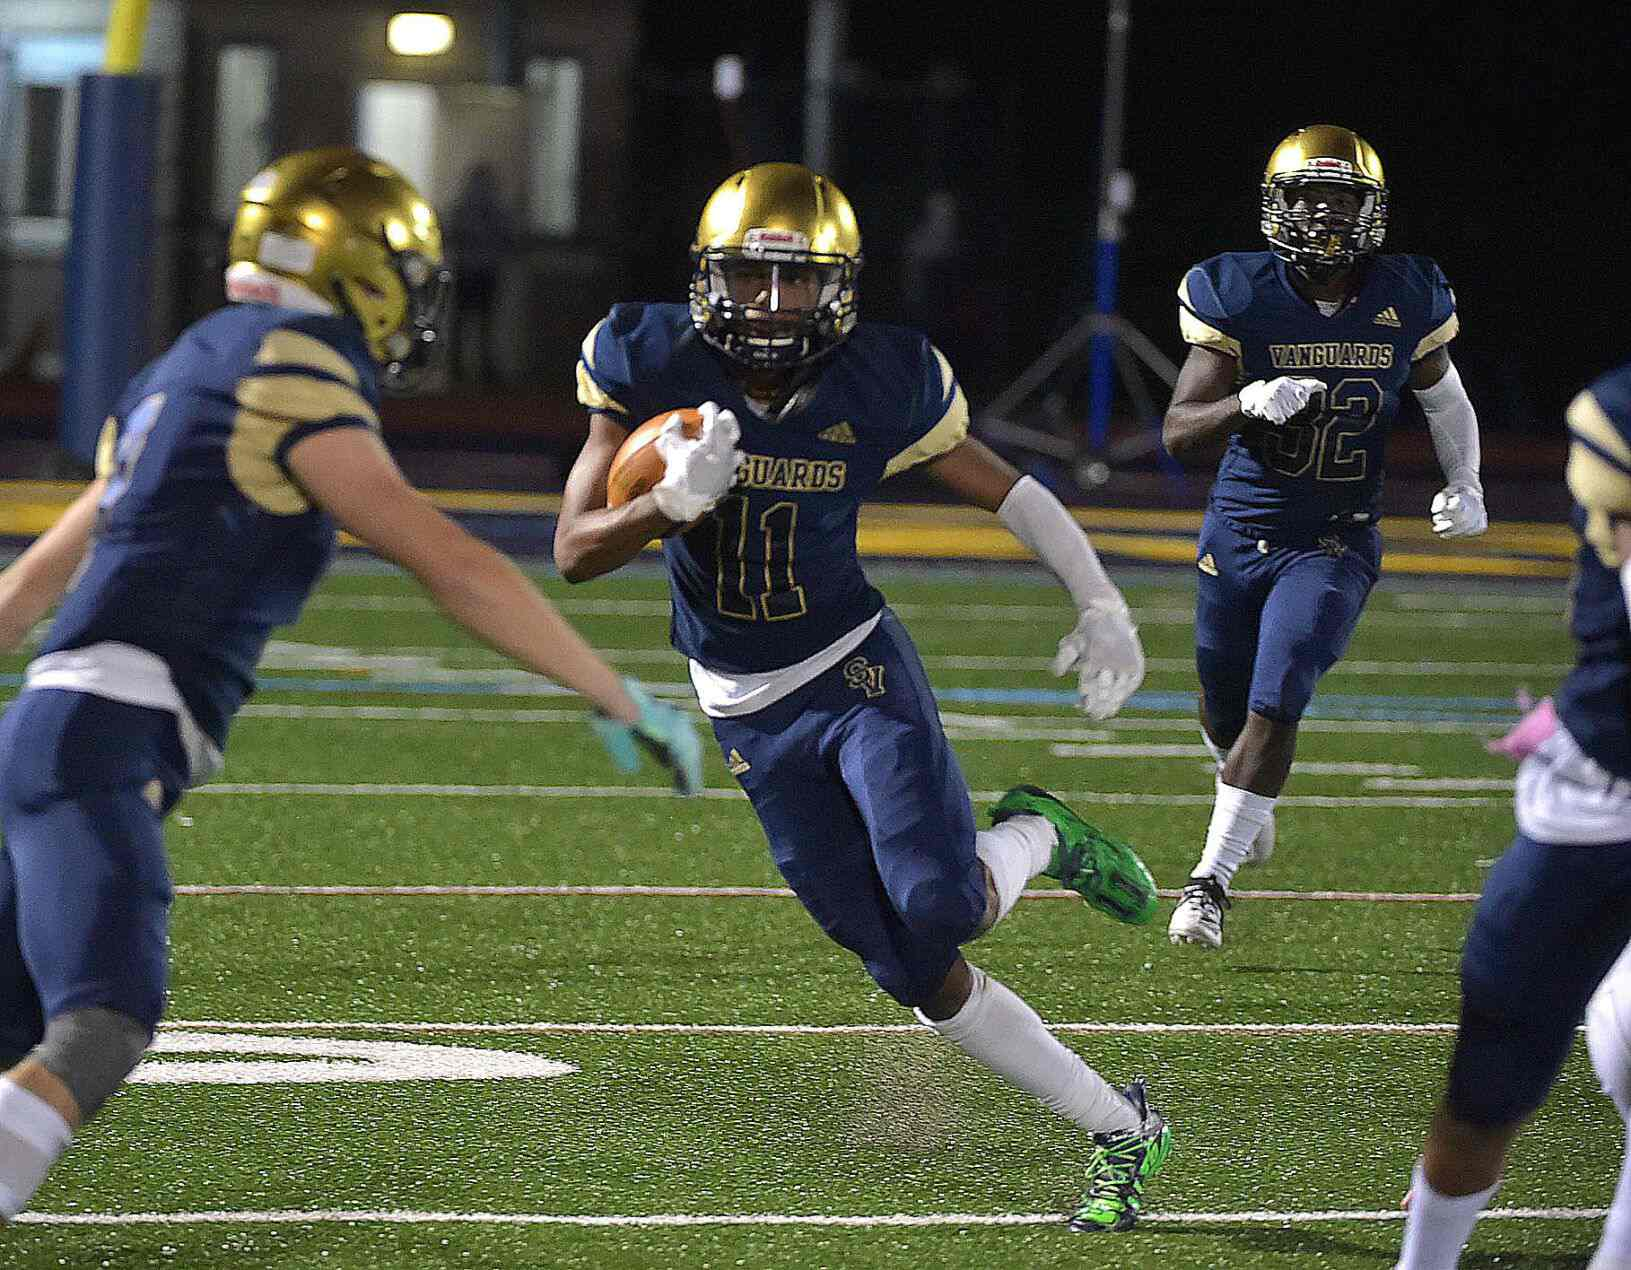 A Poignant Touchdown for Sun Valley as High School Football Resumes